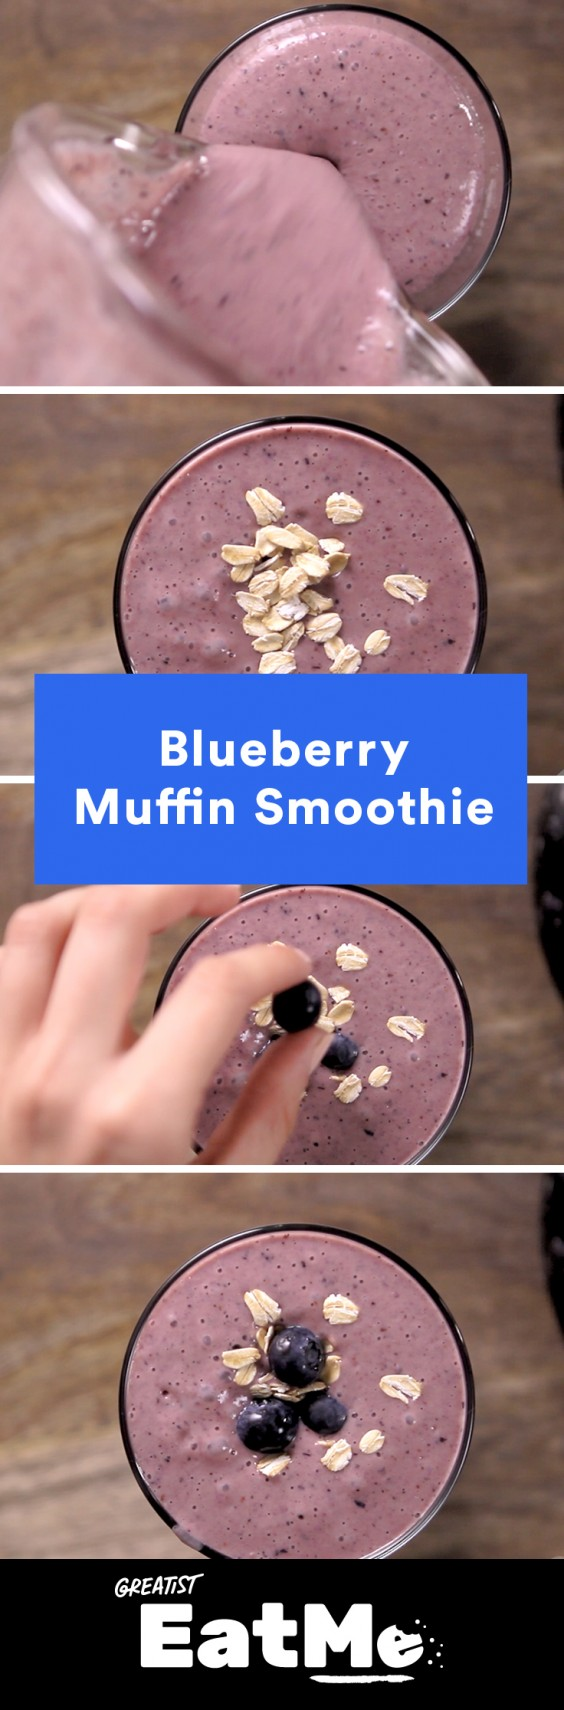 Eat Me Video: Blueberry Muffin Smoothie